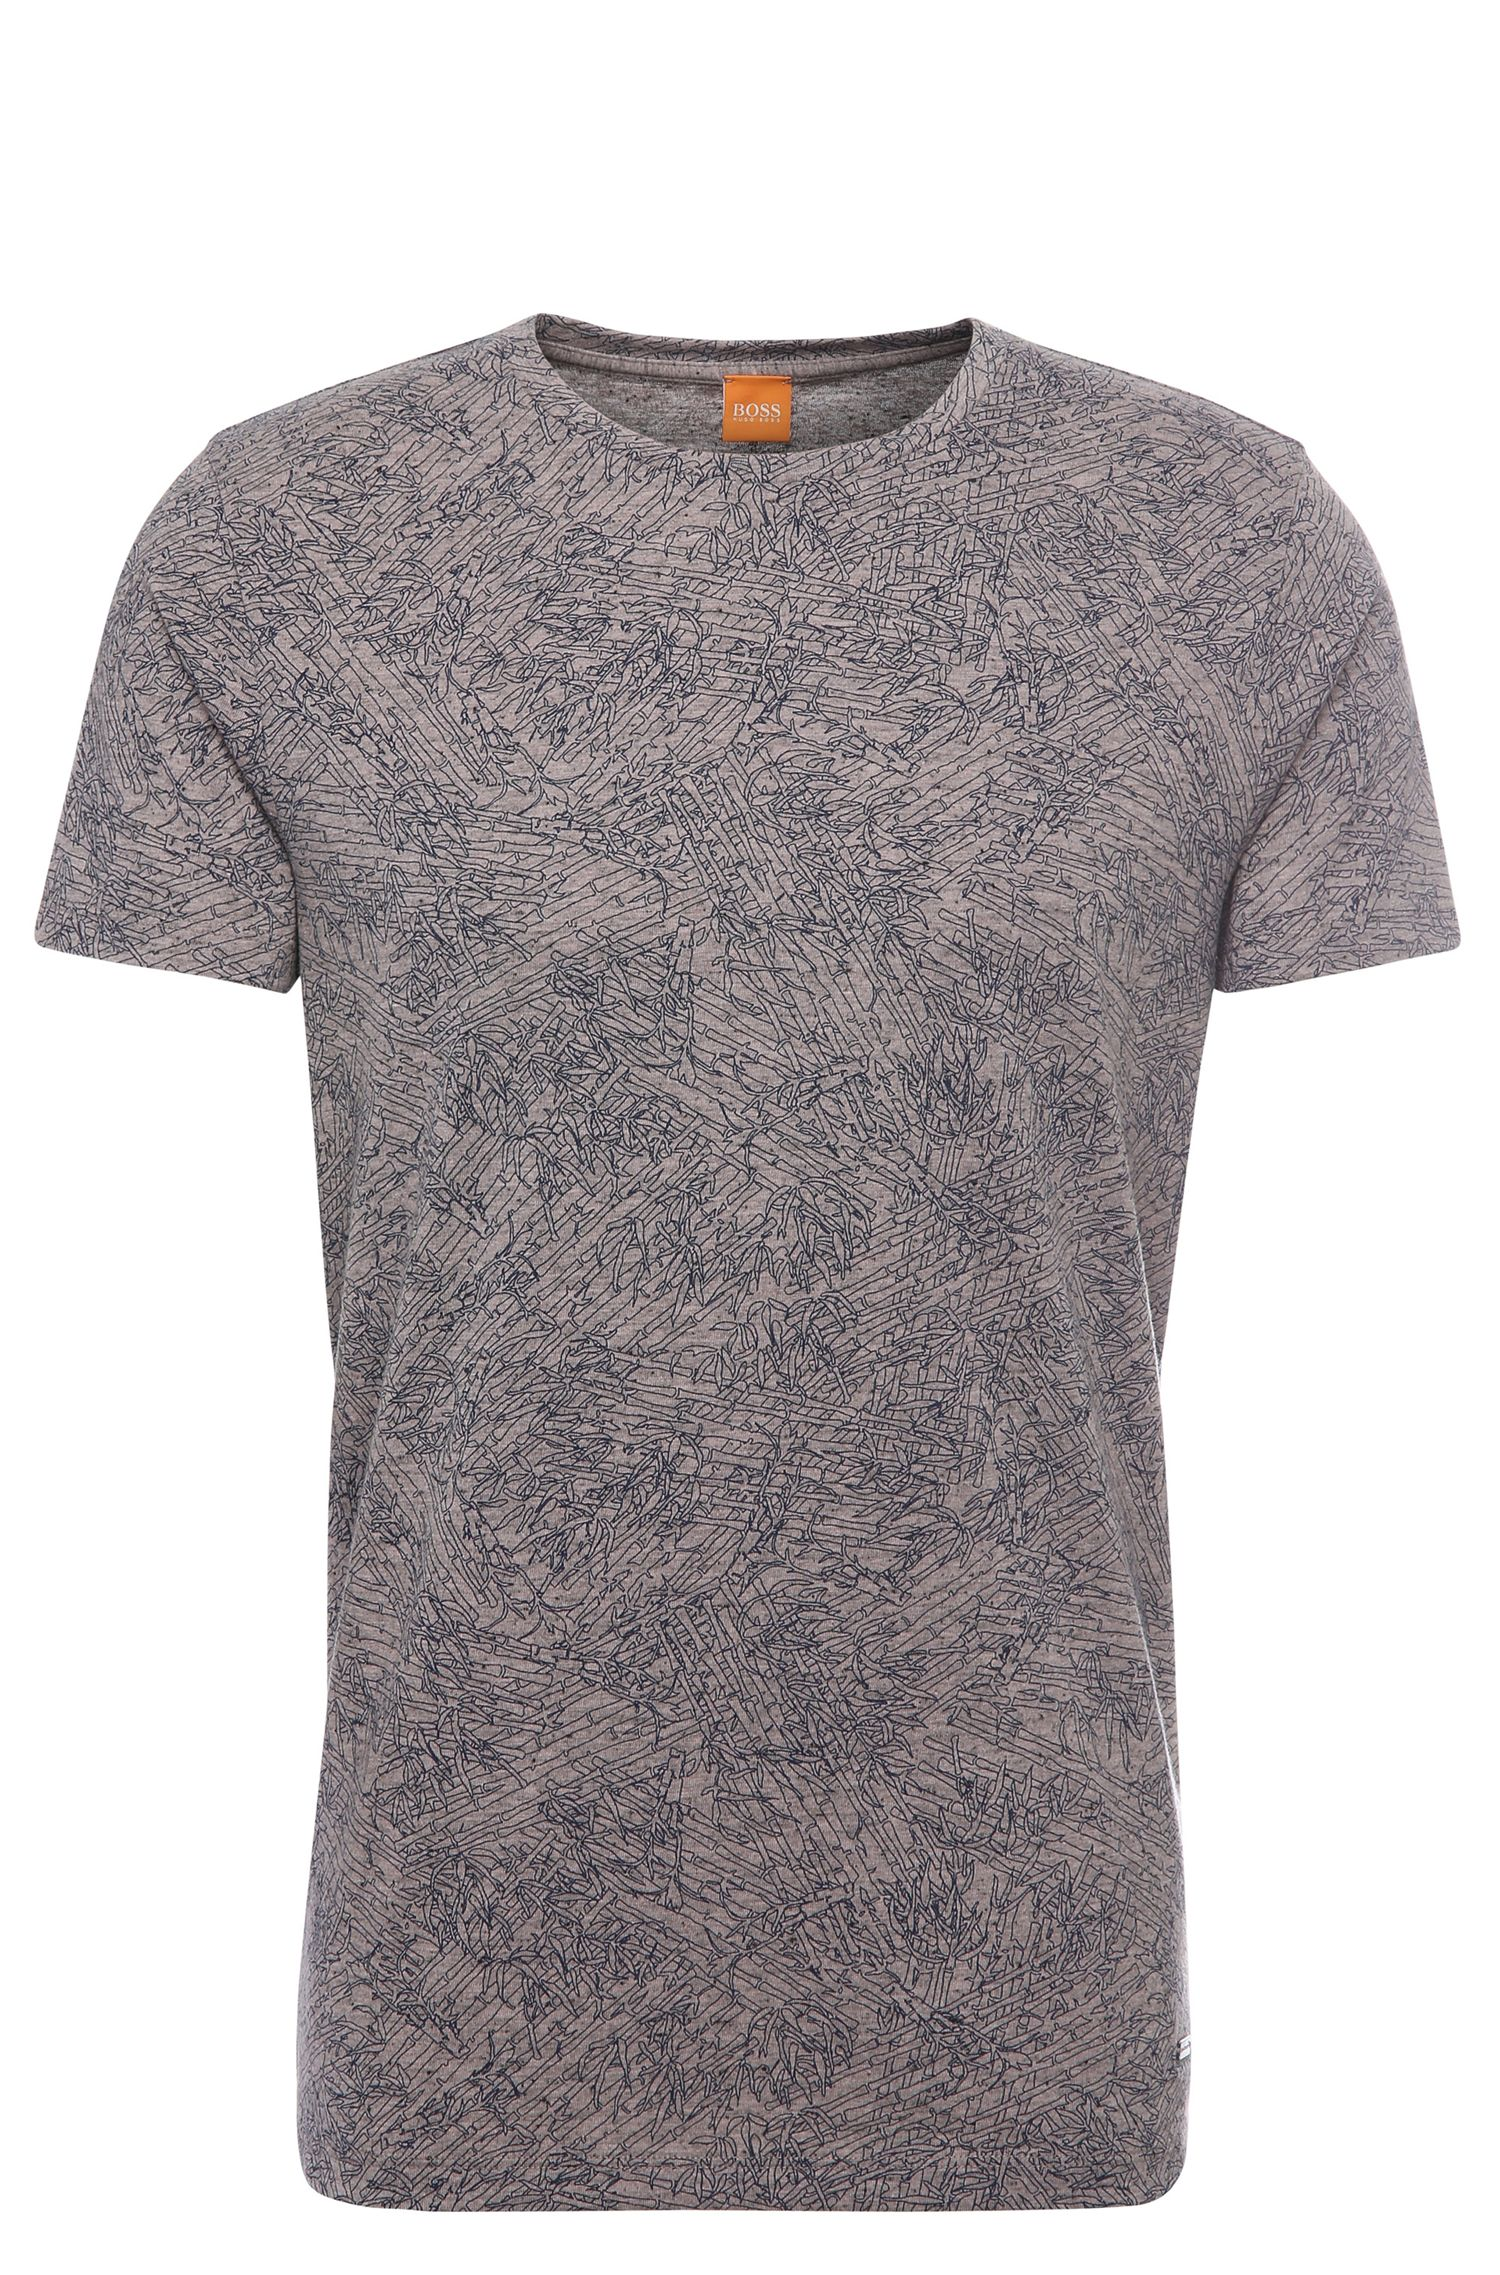 Patterned relaxed-fit t-shirt in fabric blend with cotton and modal: 'Tauryon'